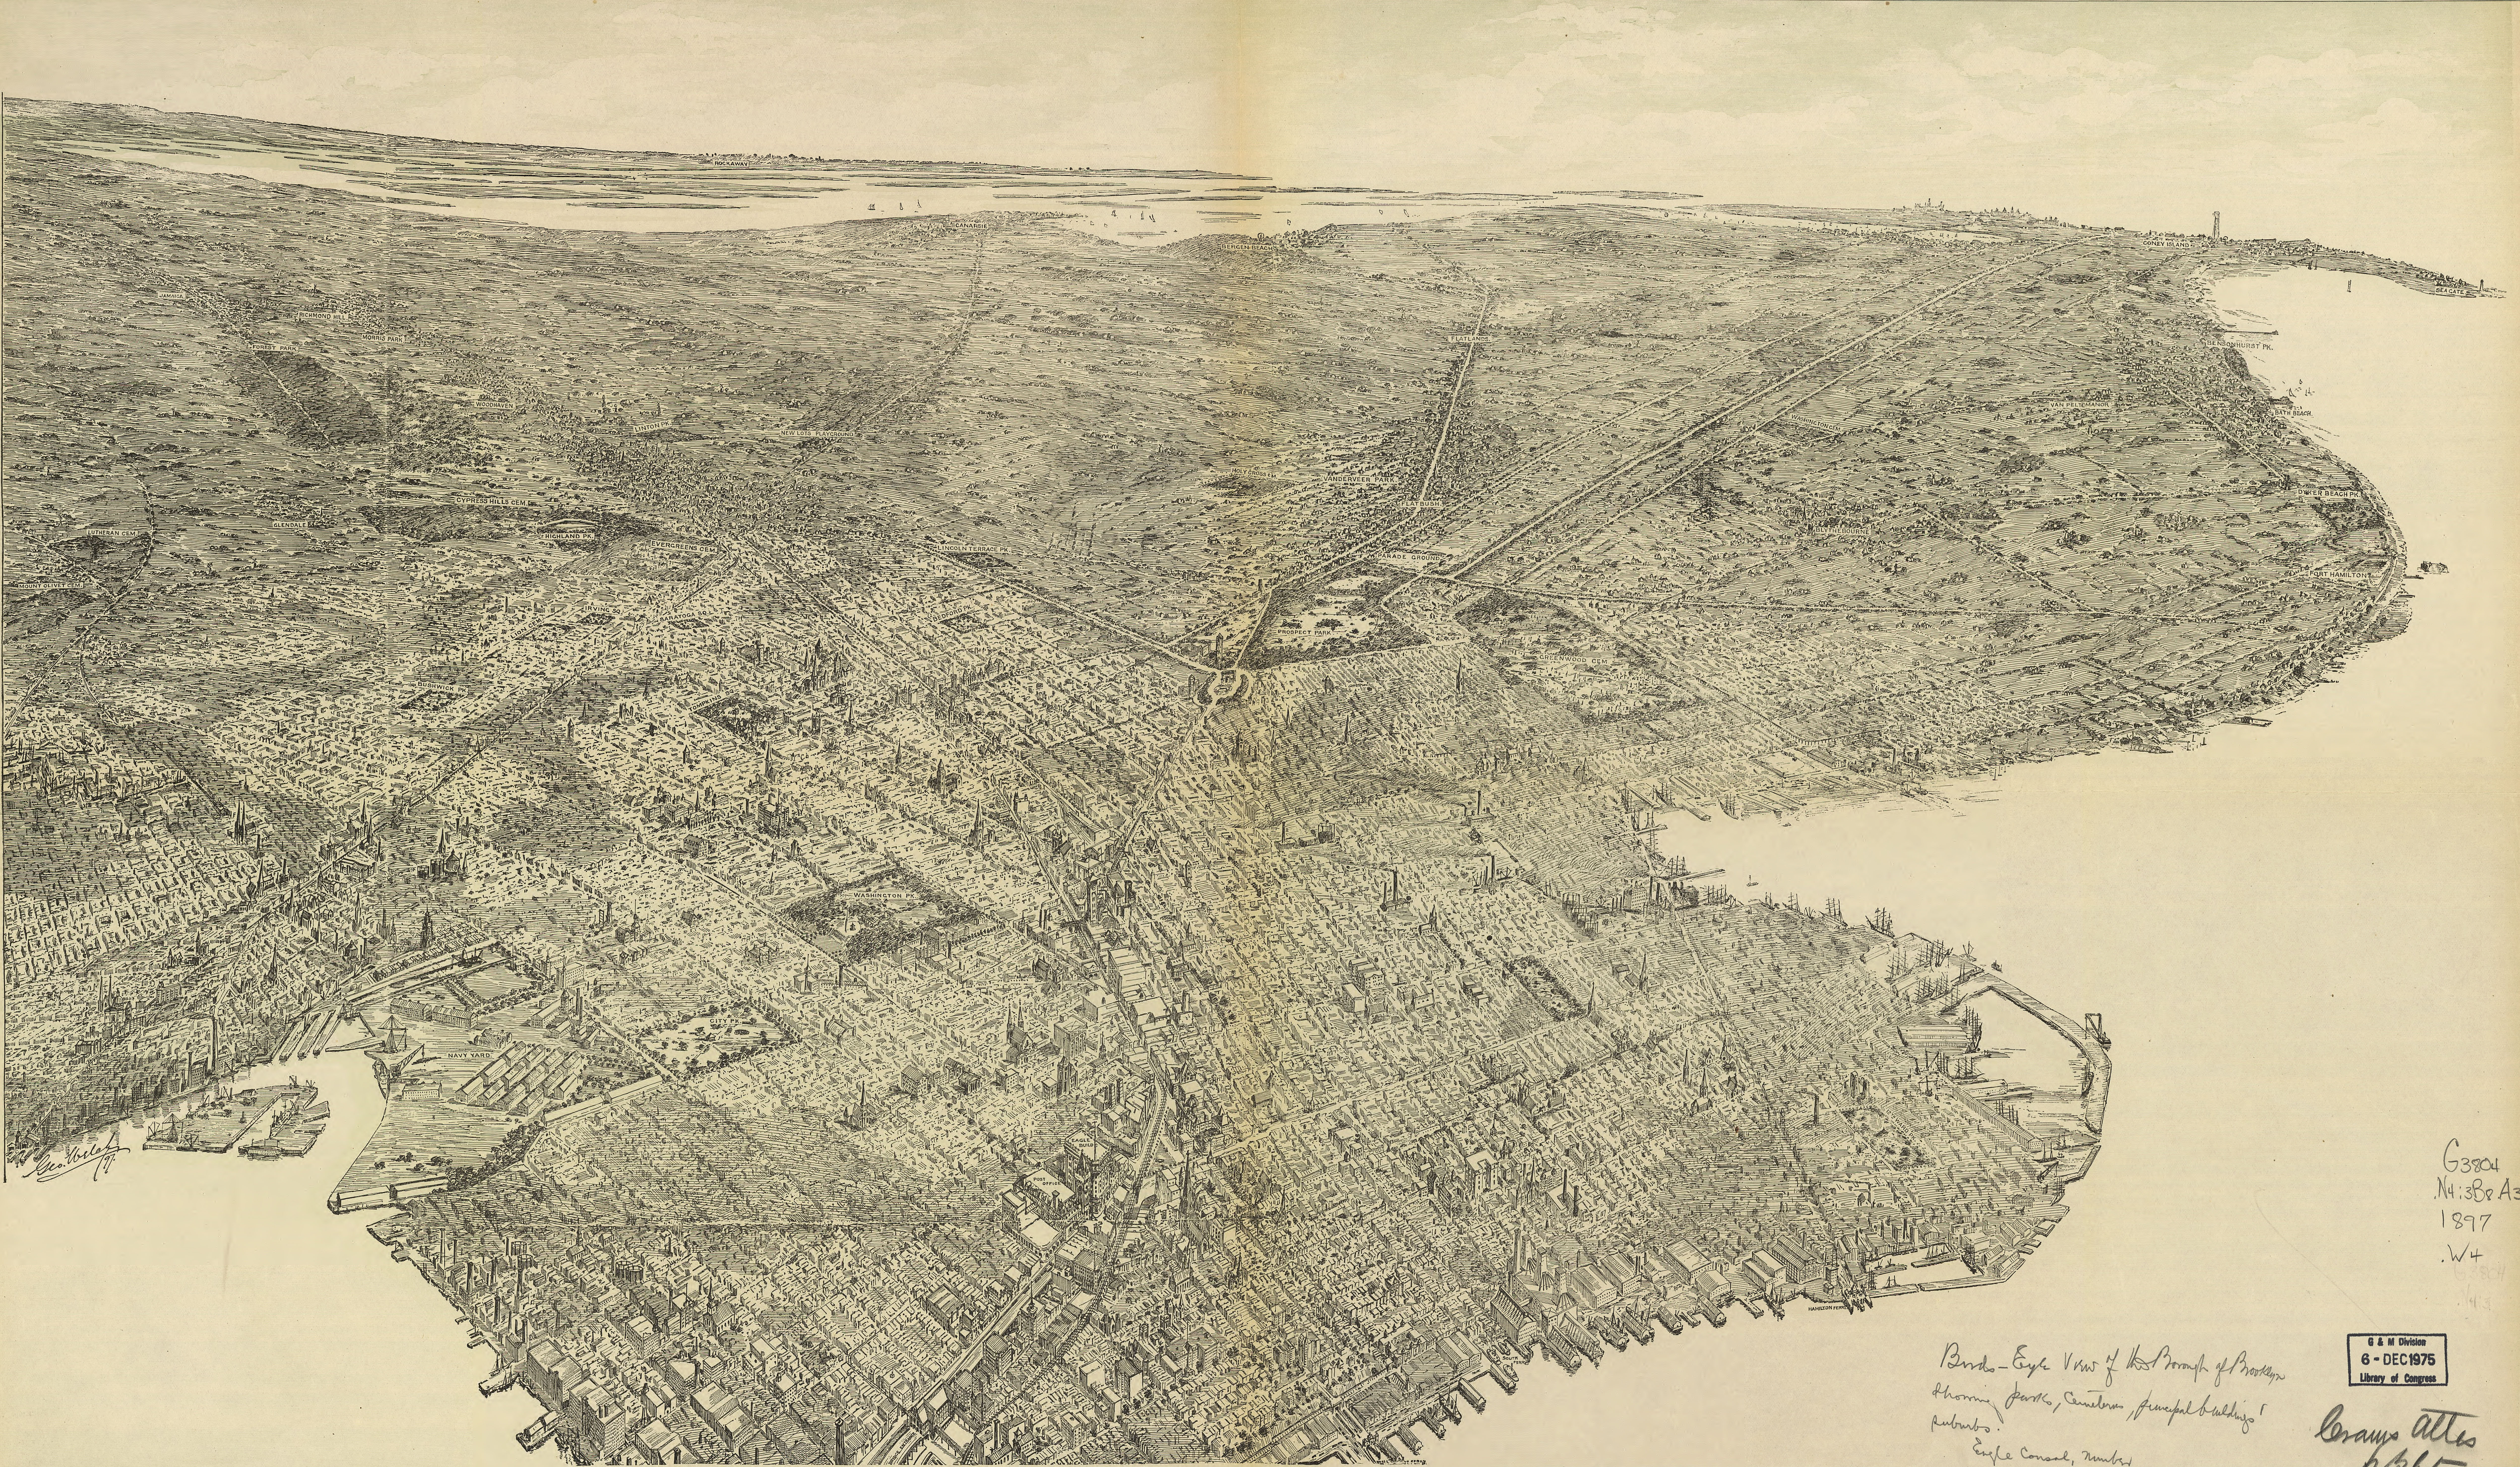 free downloads of large old new york city maps minimalgoods